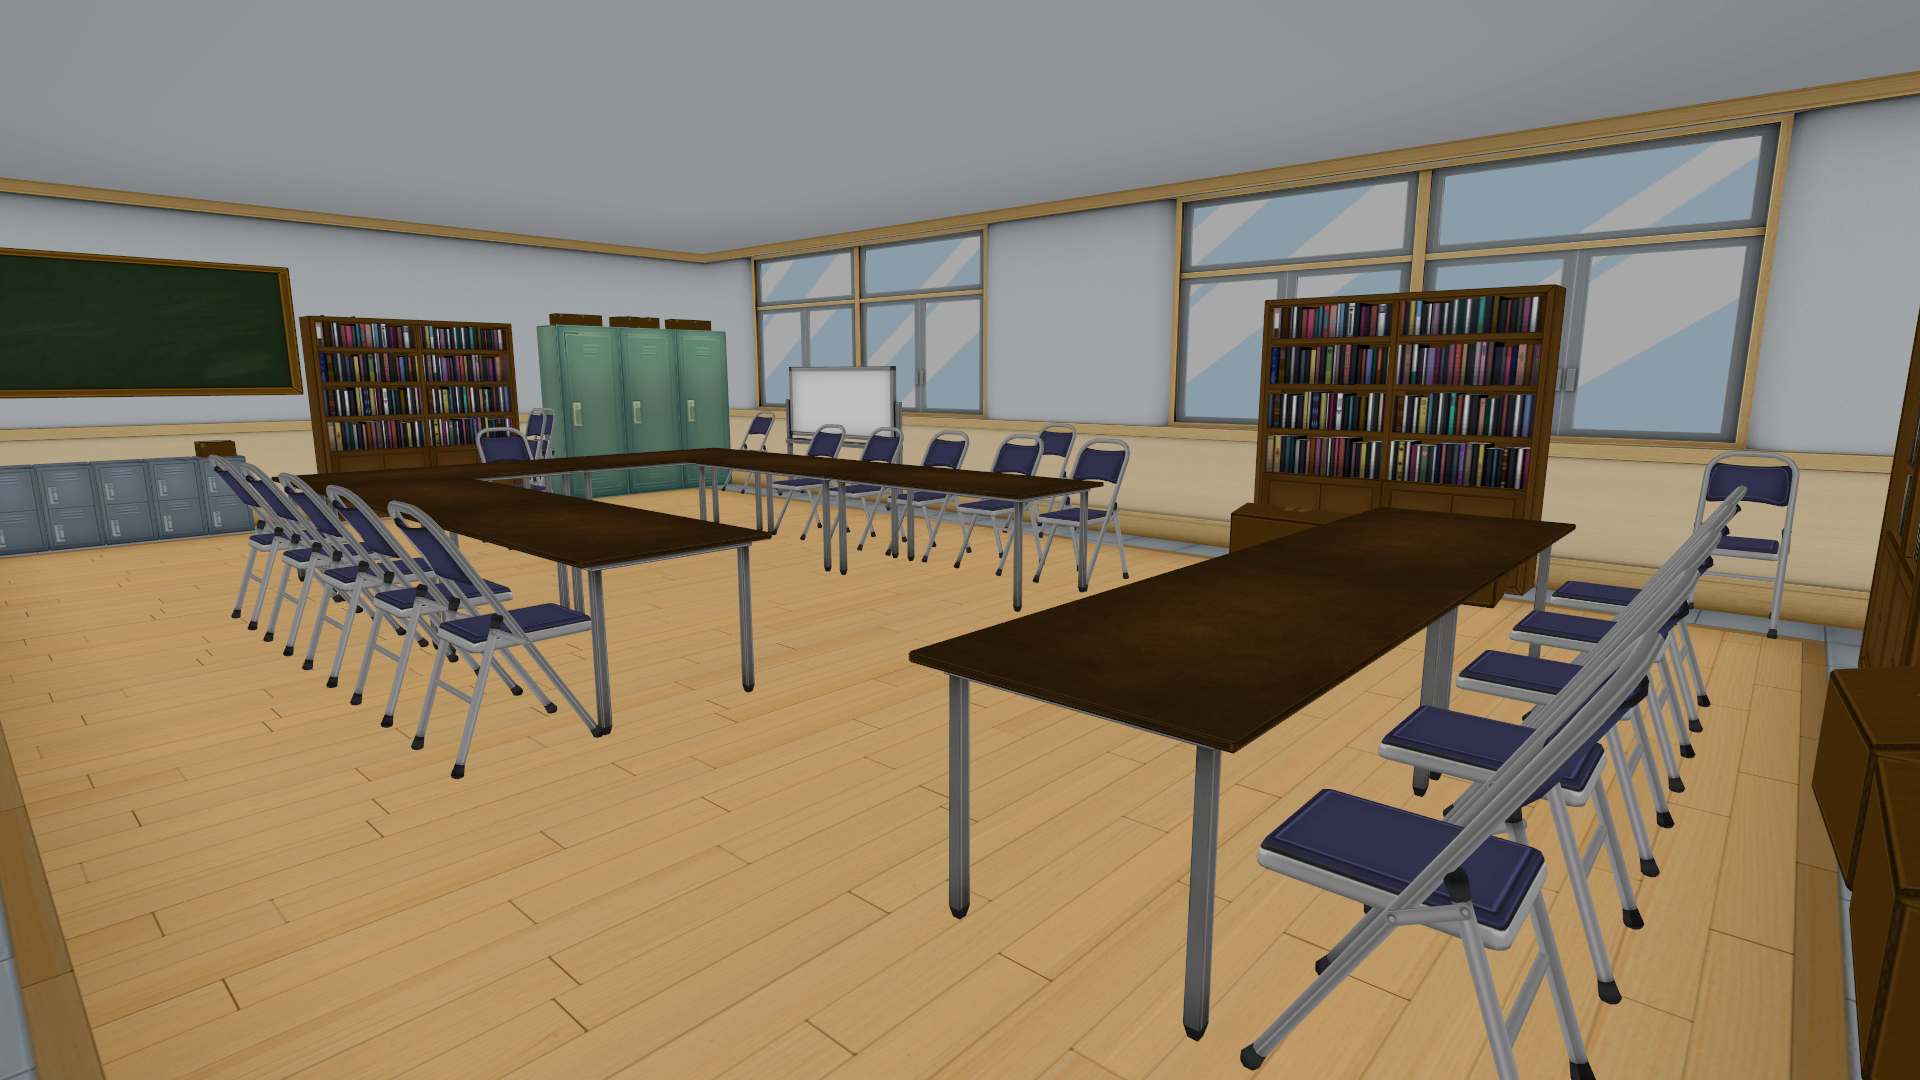 Meeting Room | Yandere Simulator Wiki | FANDOM powered by Wikia